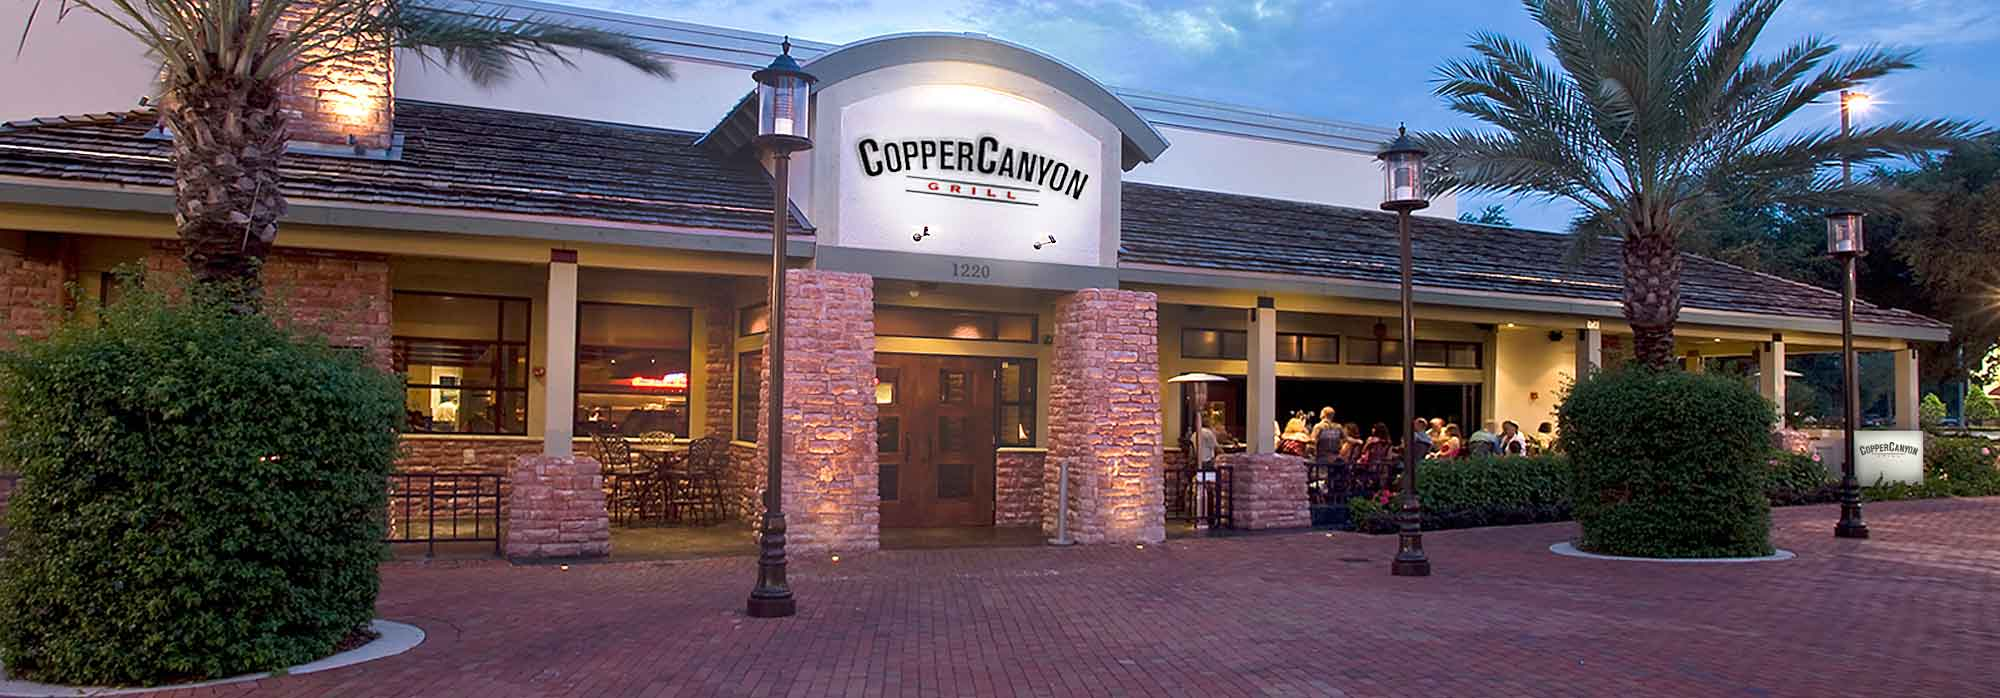 copper-canyon-orlando.jpg